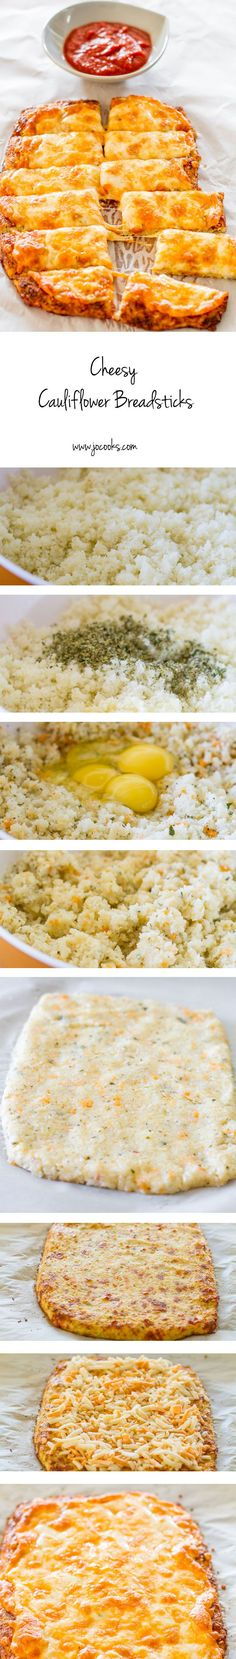 very good Cheesy Cauliflower Breadsticks – gluten free, low carb, cheesy cauliflower breadsticks! This recipe is a winner and a keeper! by lindsey Gluten Free Recipes, Low Carb Recipes, Vegetarian Recipes, Cooking Recipes, Healthy Recipes, Scd Recipes, Flour Recipes, Banting Recipes, Atkins Recipes